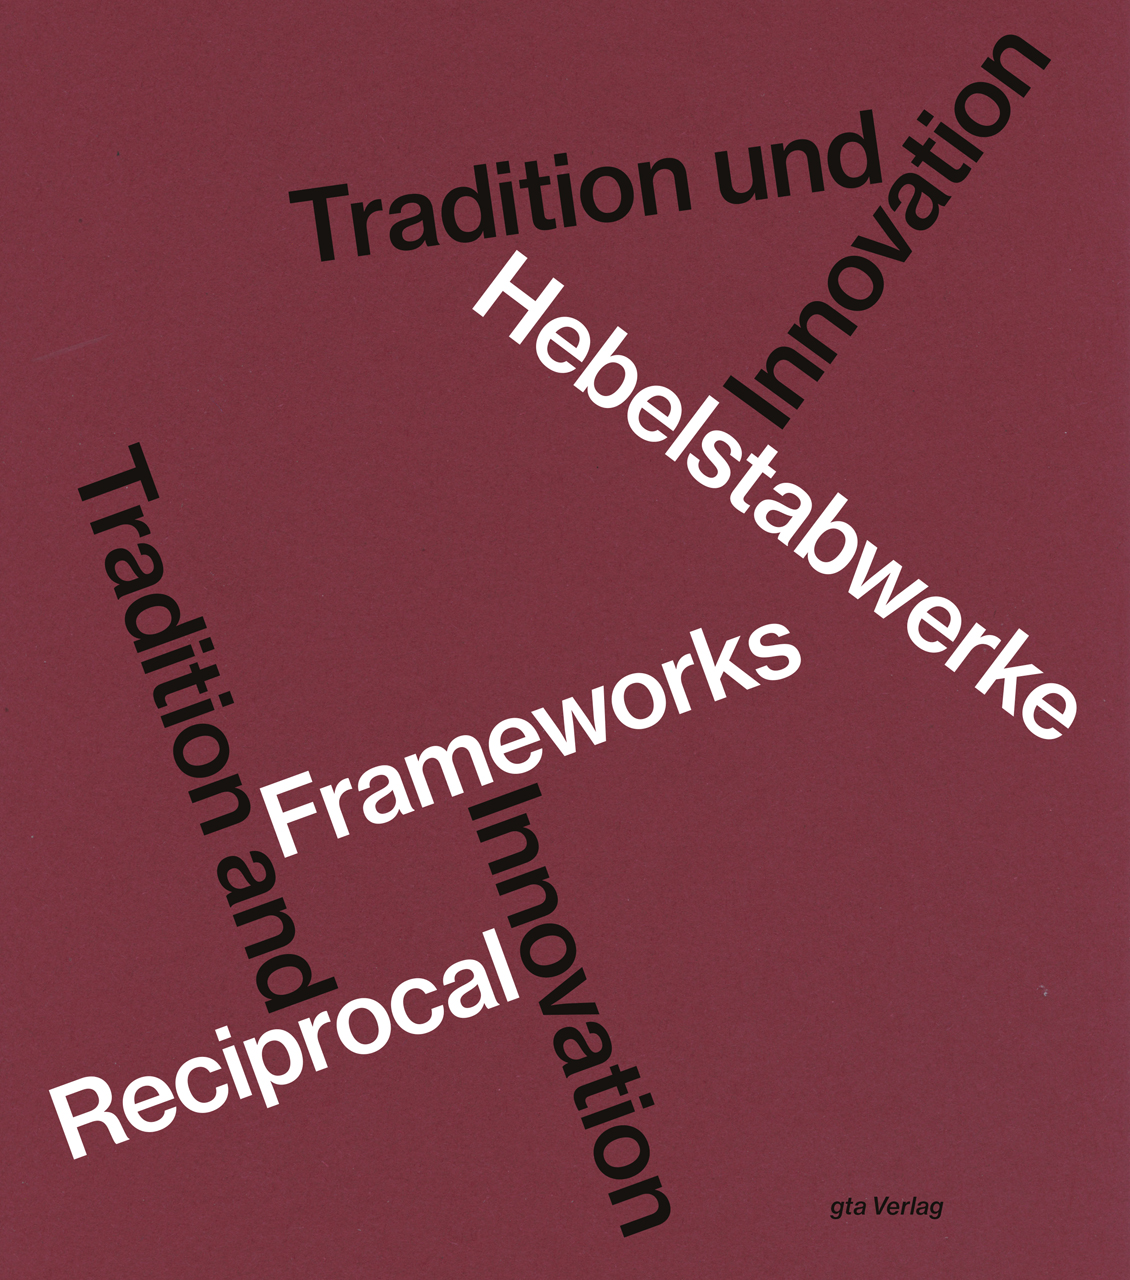 Hebelstabwerke / Reciprocal Frameworks: Tradition and Innovation